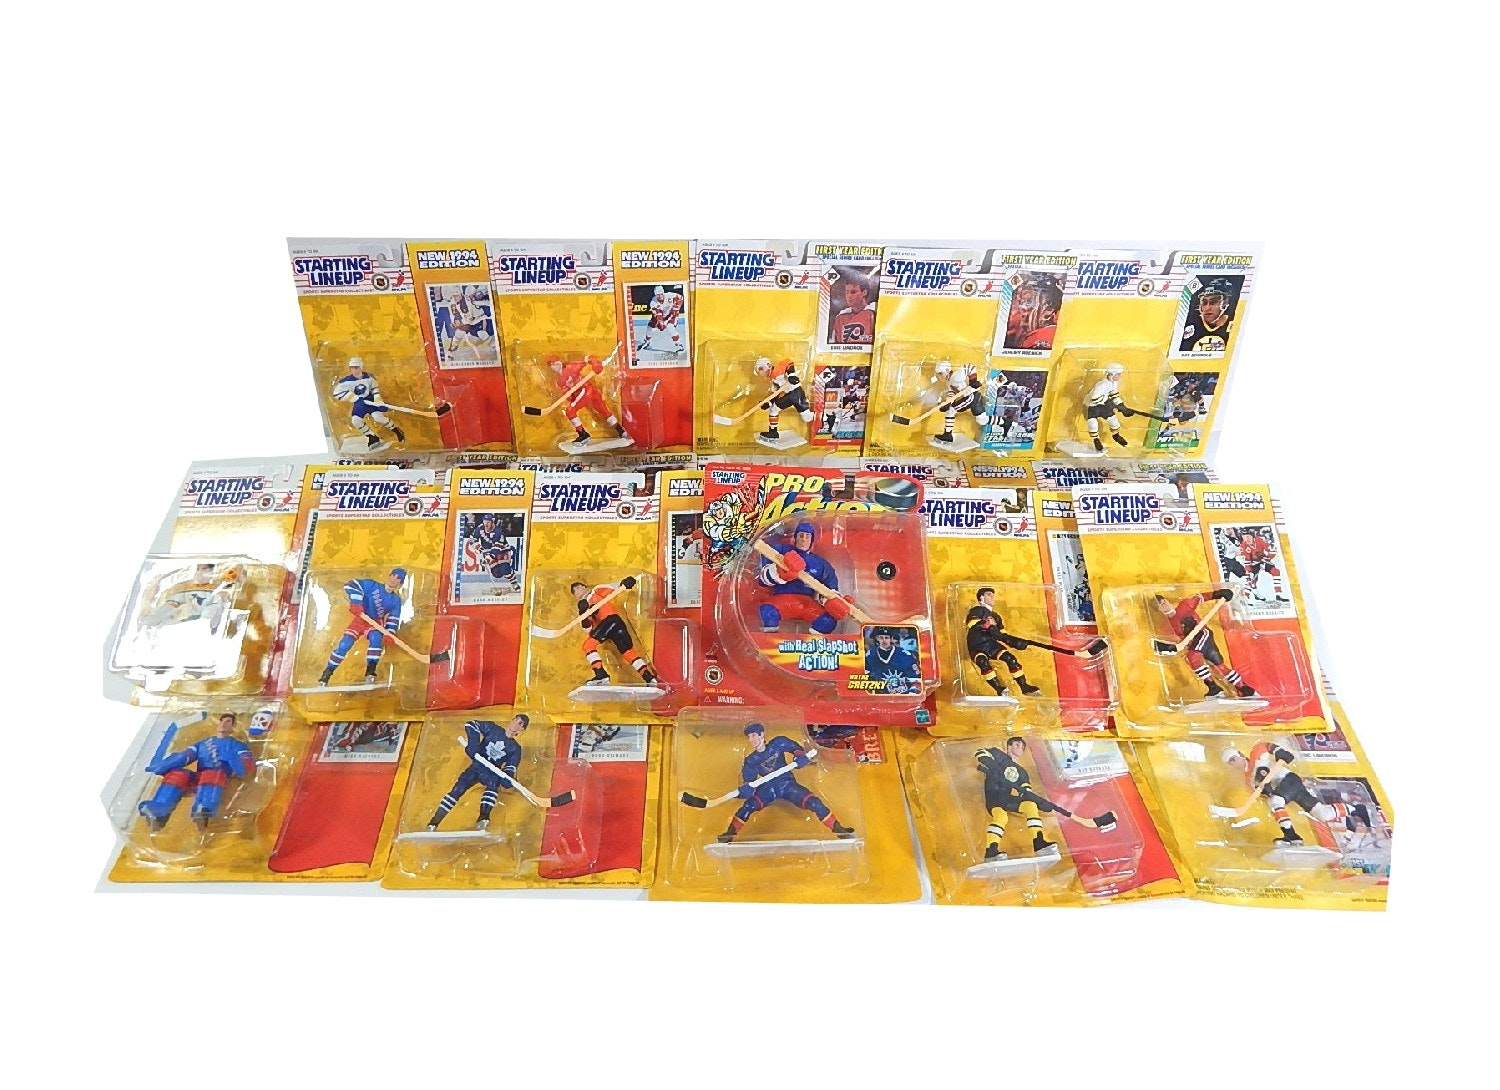 Lot of NHL Starting Lineup Action Figures with Gretzky, Lemieux, More